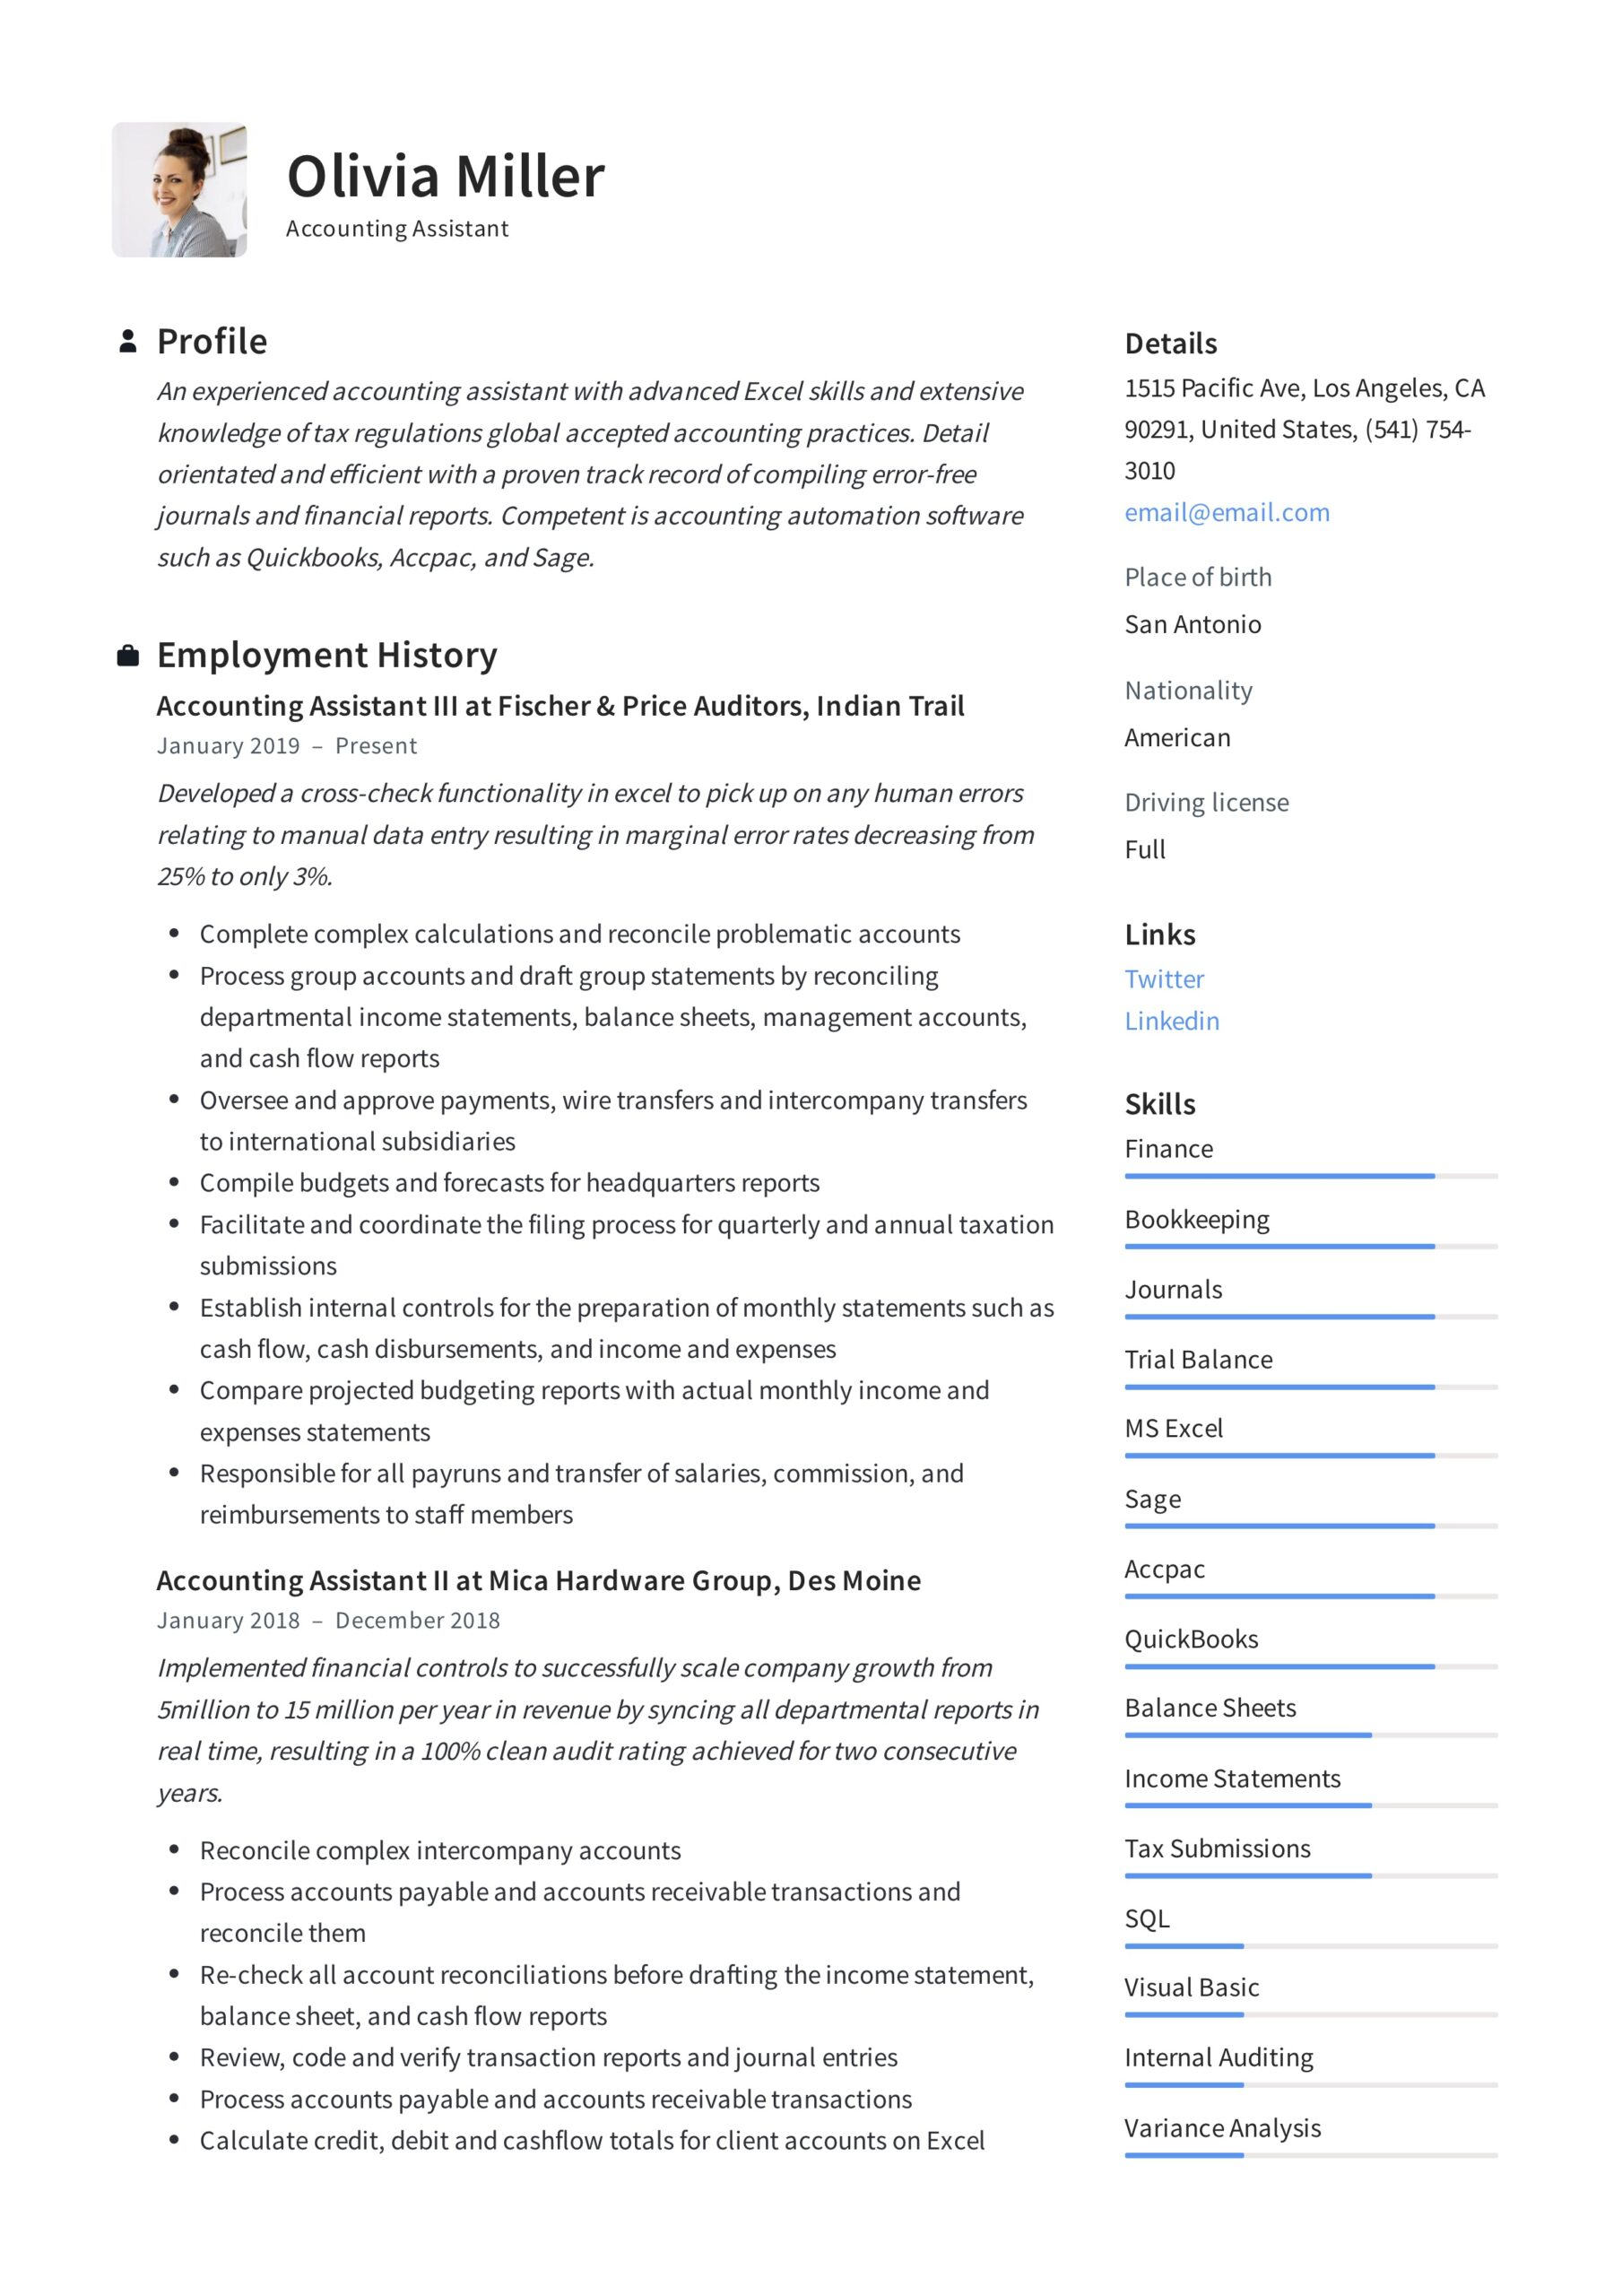 accounting assistant resume writing guide examples pdf for account indian format medical Resume Resume For Account Assistant Indian Format